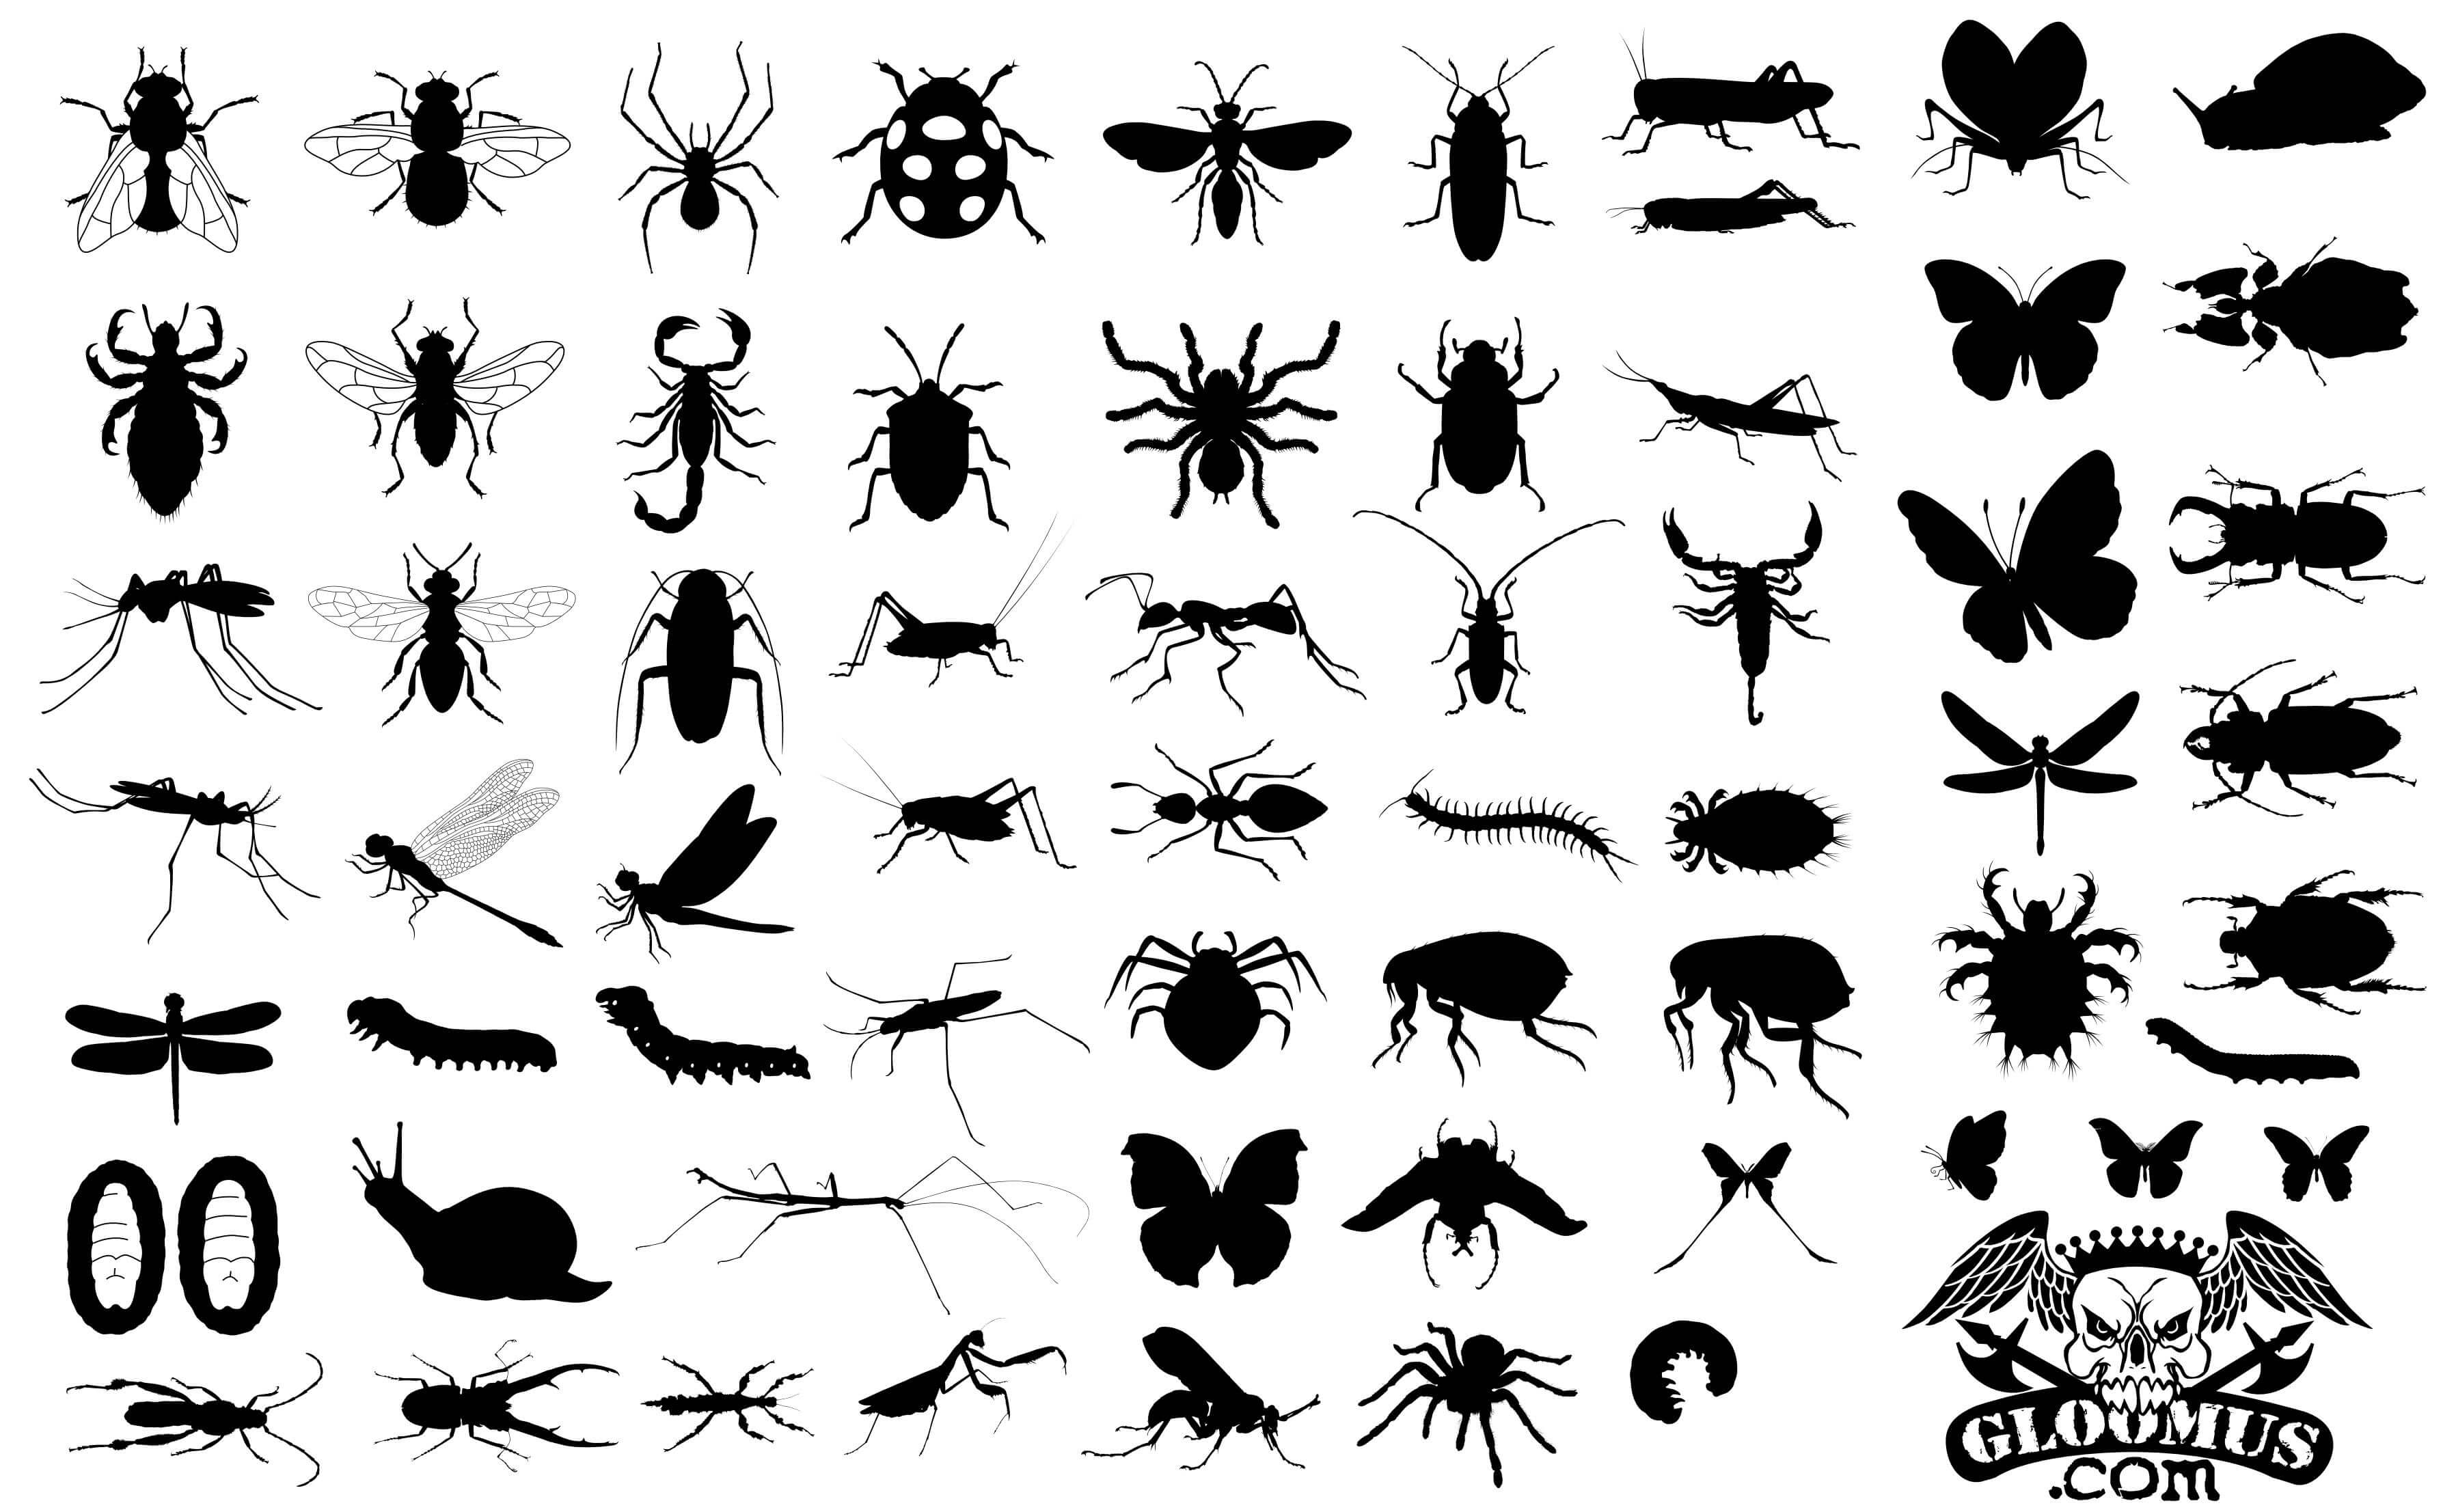 65 Insect Silhouettes png